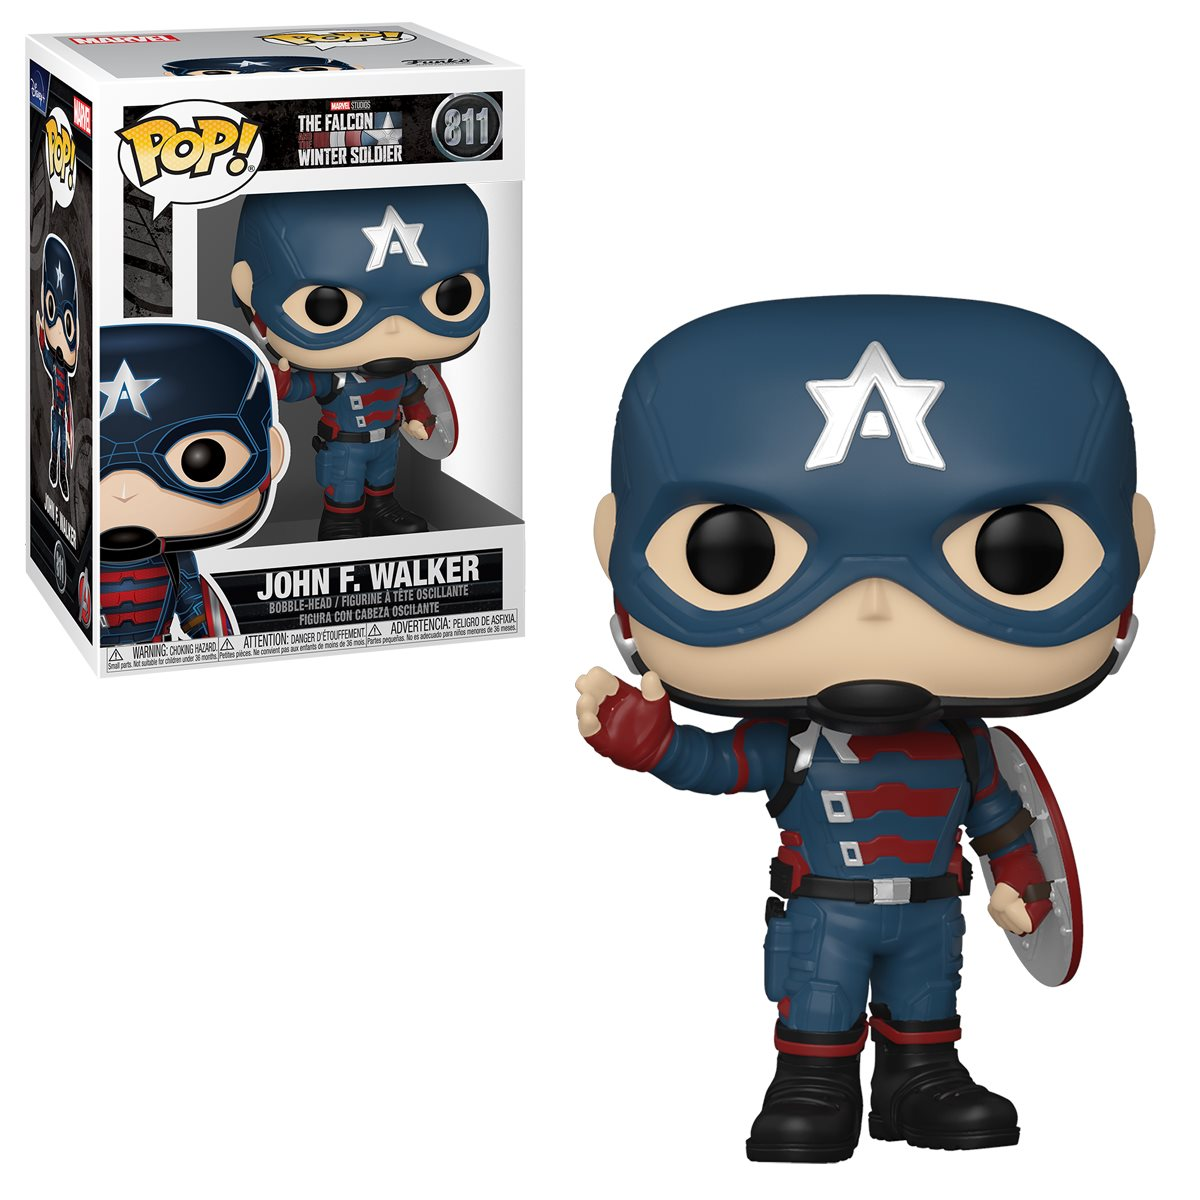 PRÉ VENDA: Funko Pop! John F. Walker: Falcão e o Soldado Invernal The Falcon and the Winter Soldier  #811 - Funko